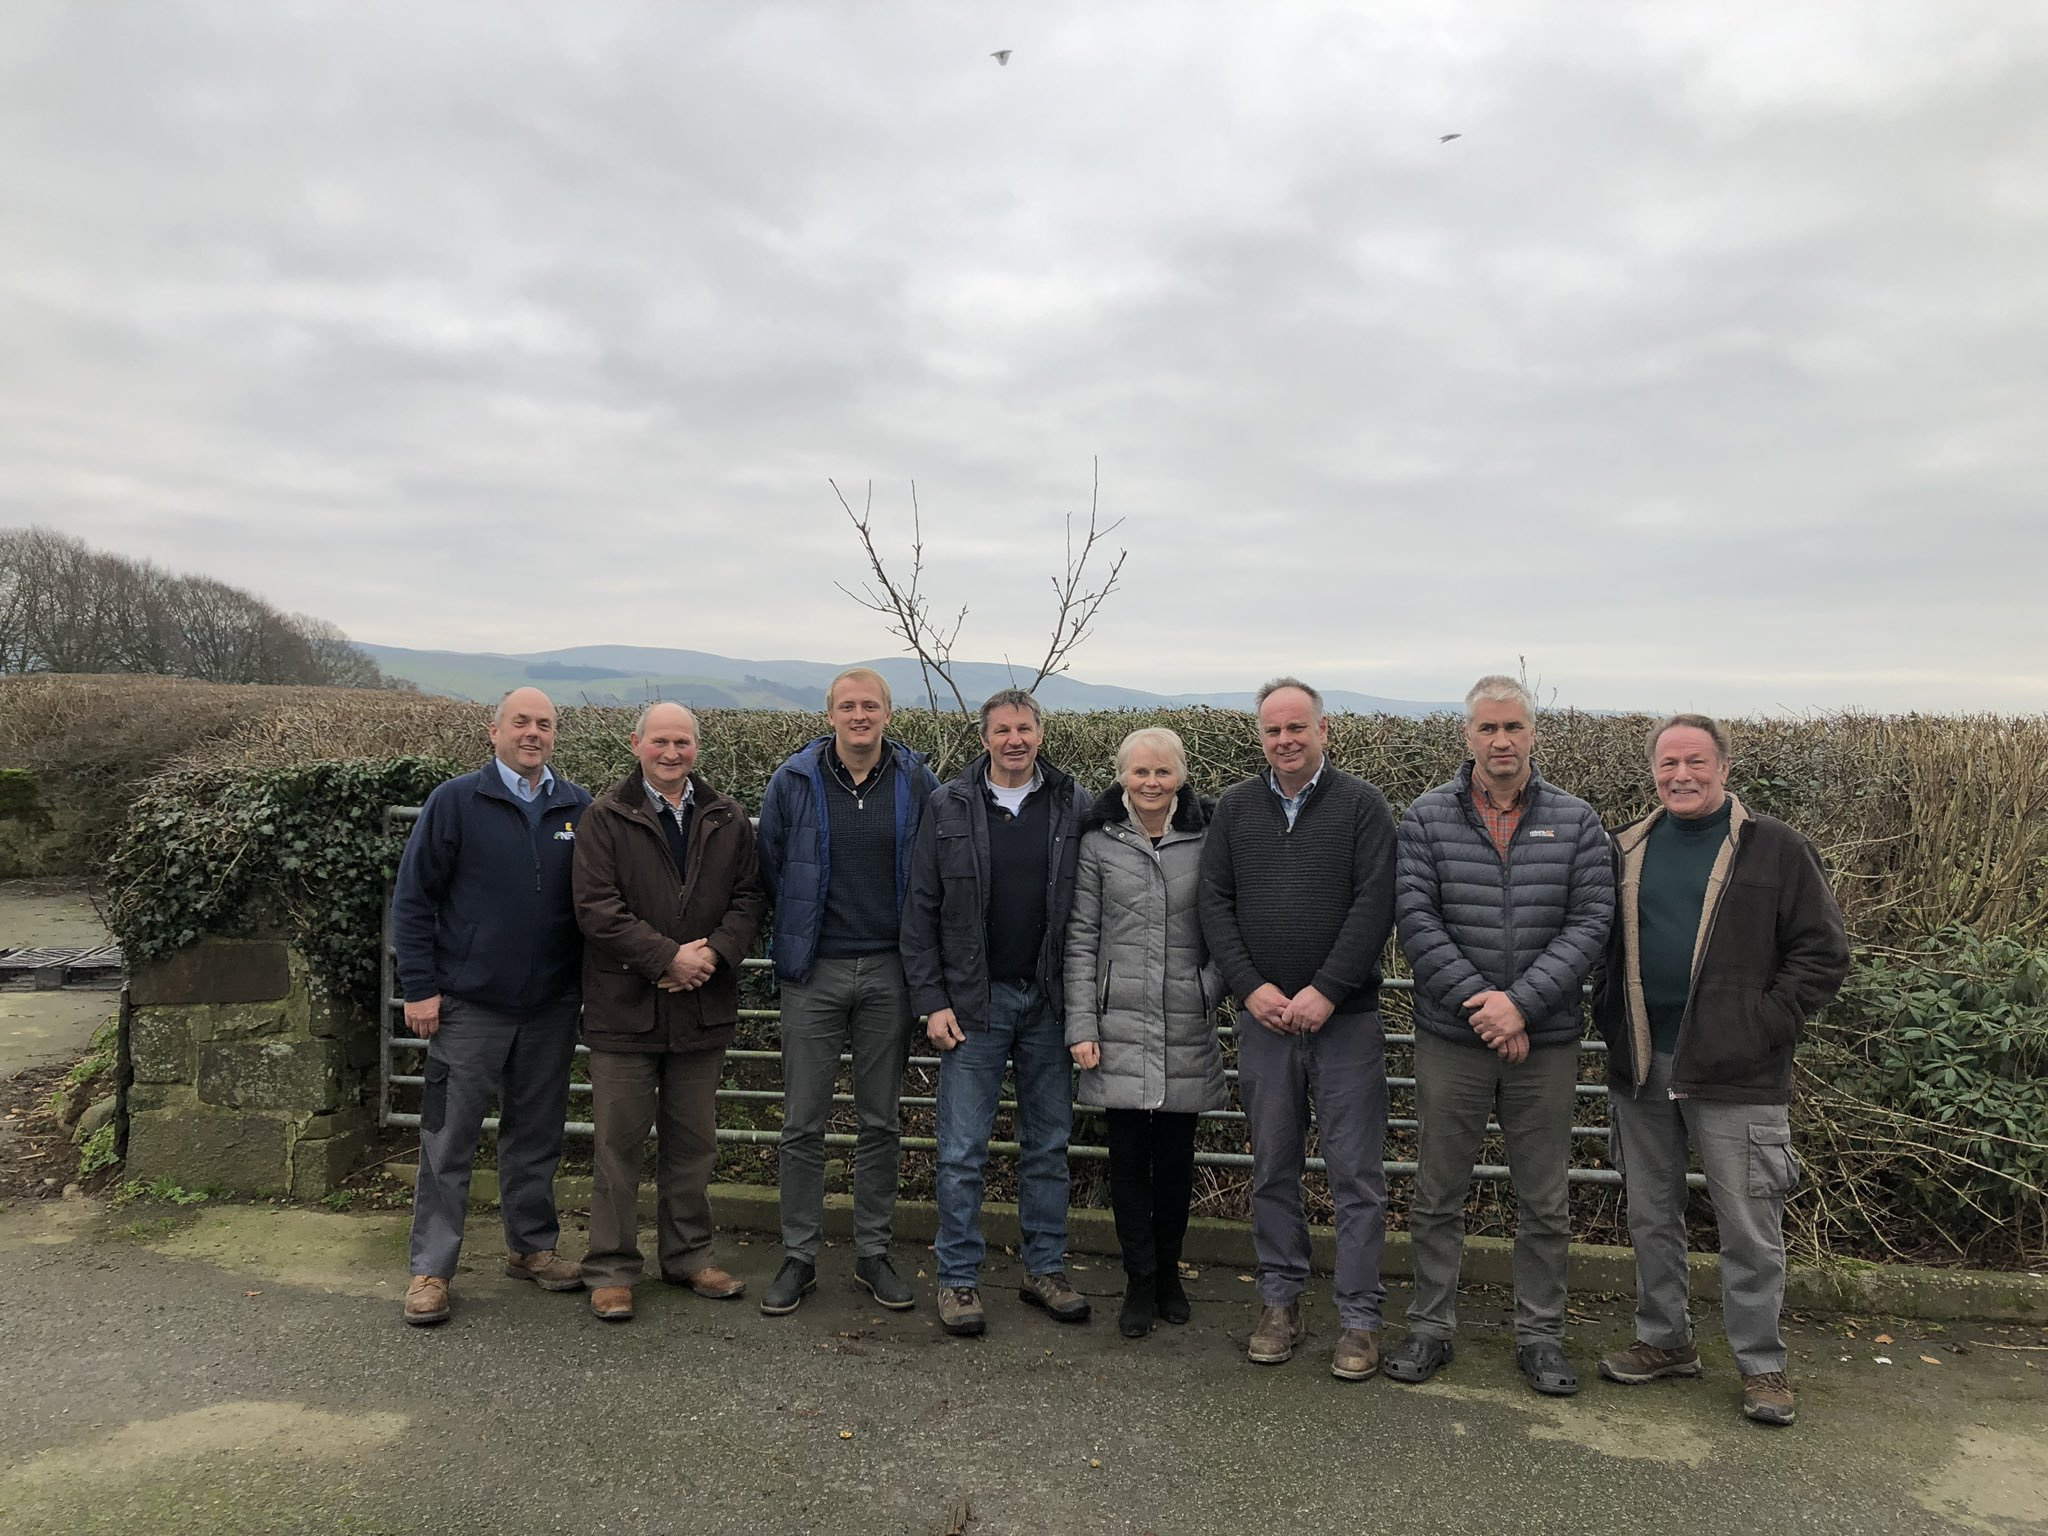 Ceredigion NFU Cymru county officeholders in a recent on-farm meeting with the local MP, Ben Lake